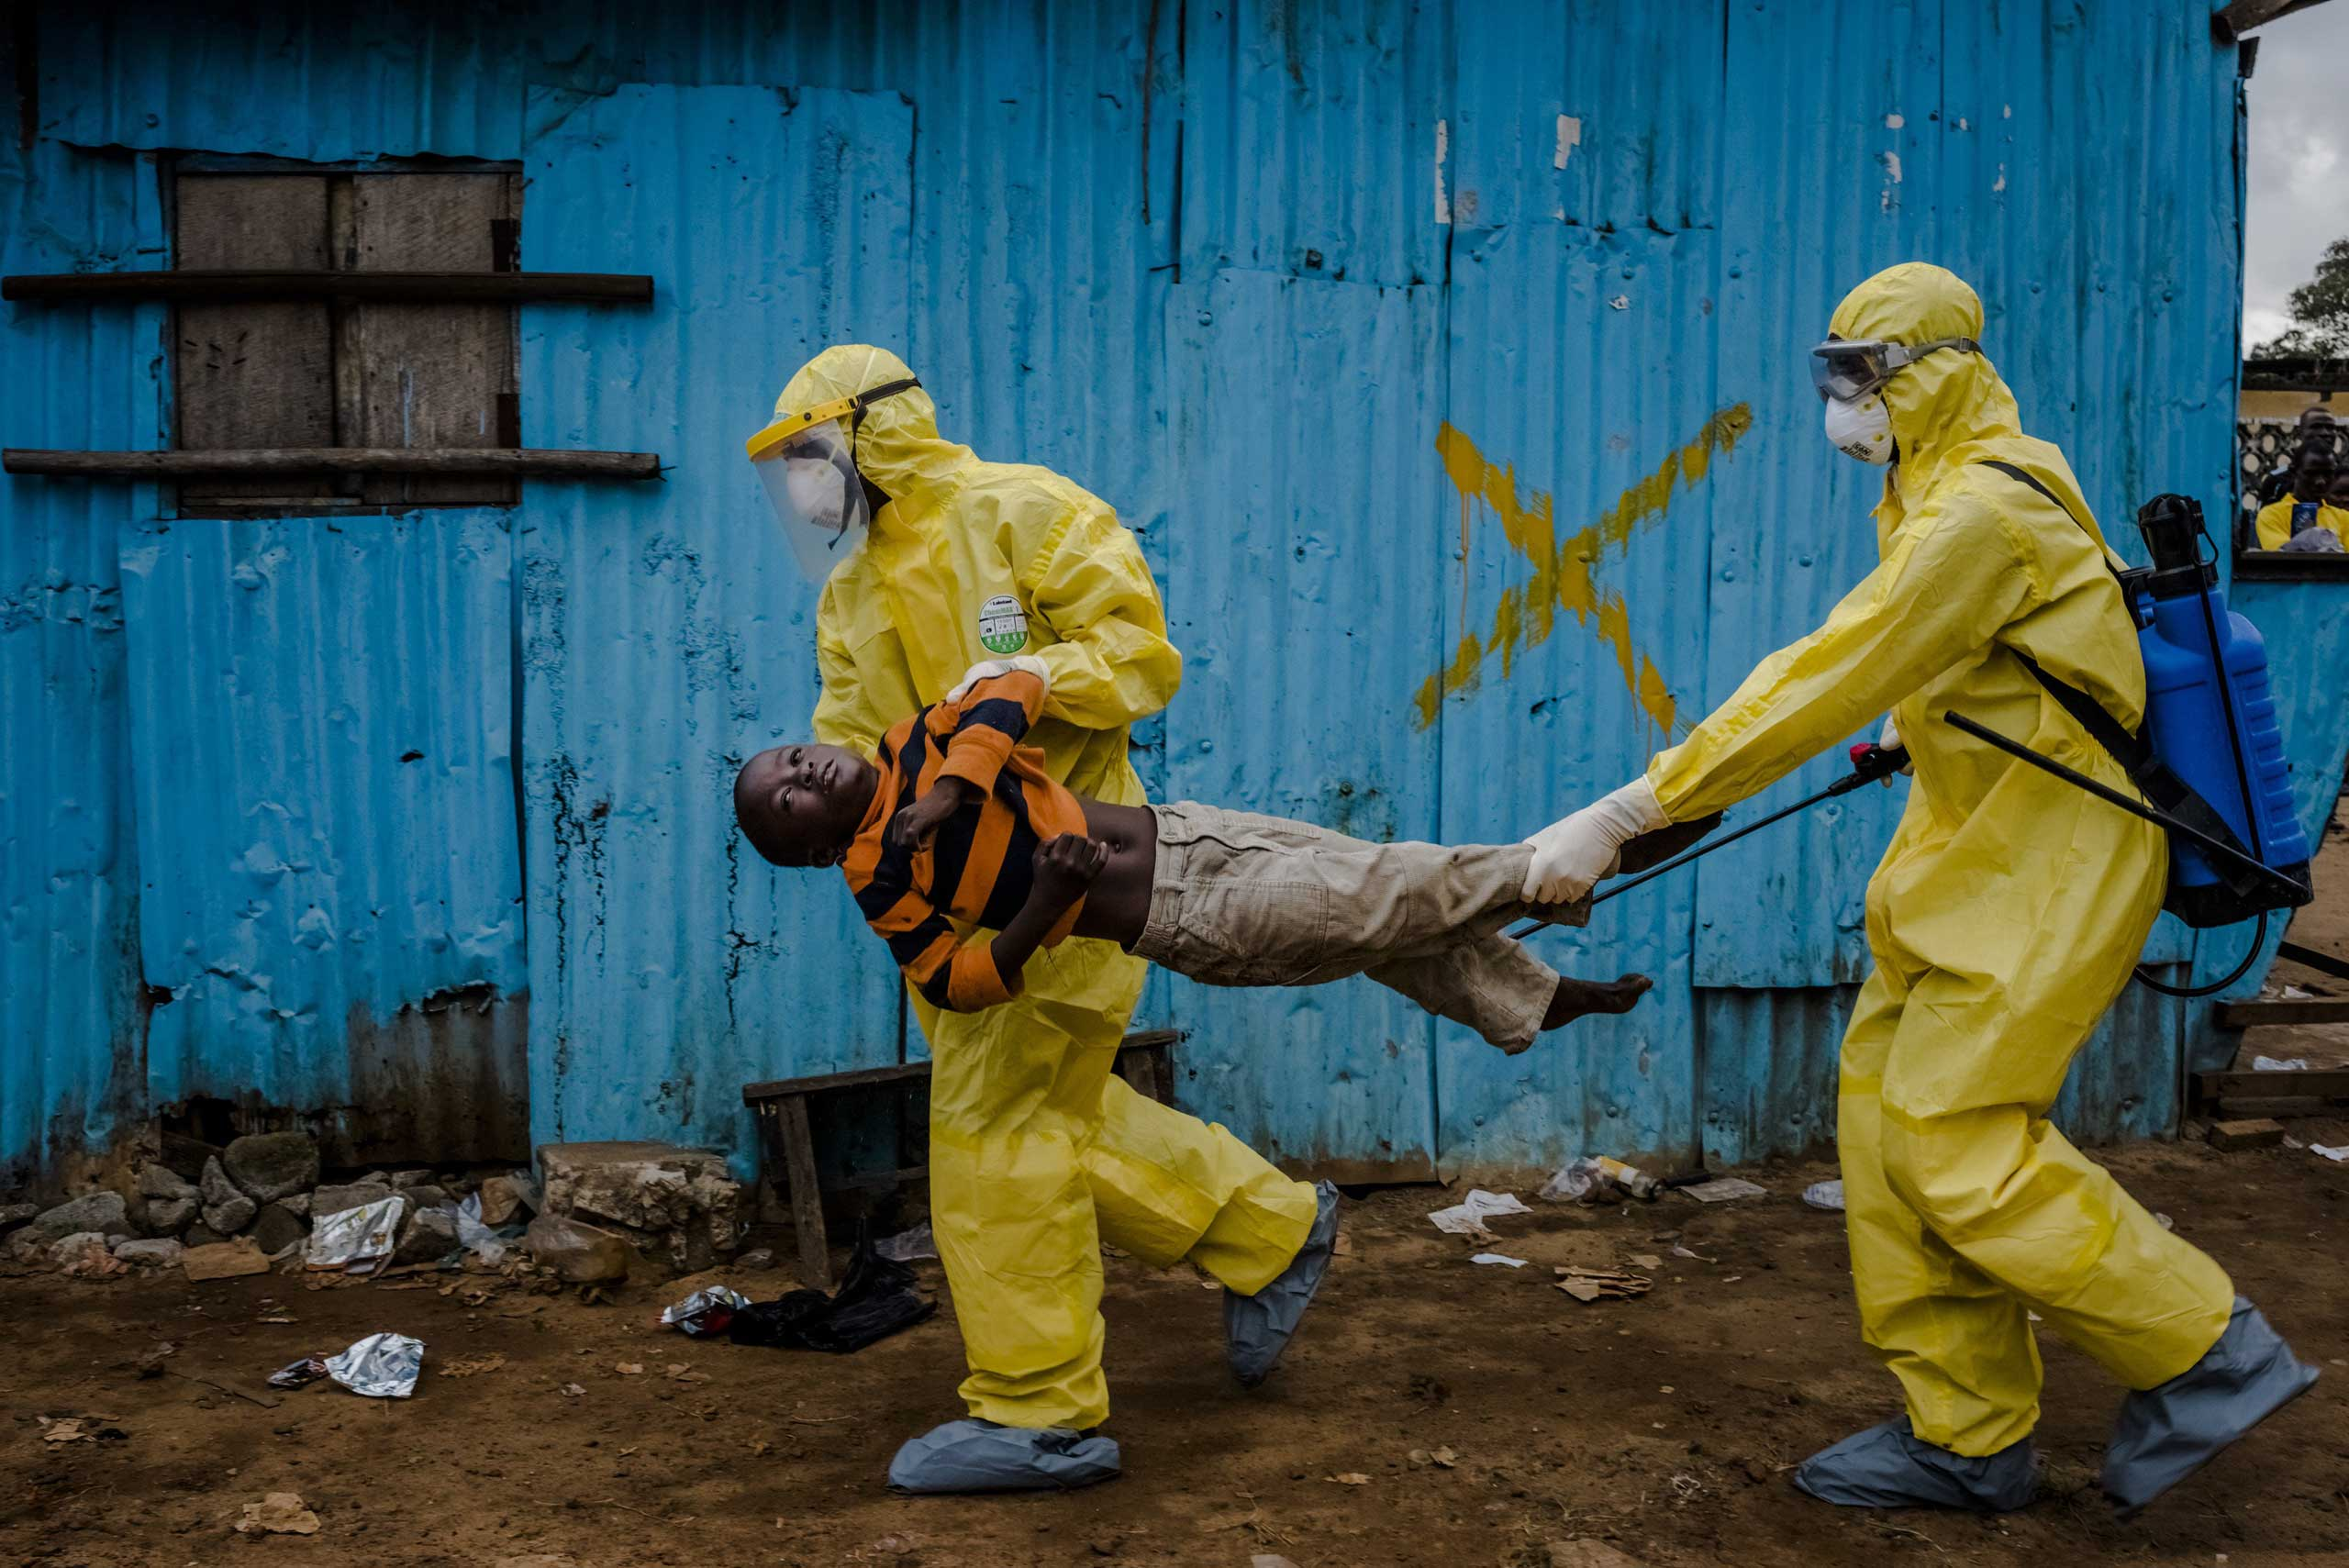 Medical staff carry James Dorbor, 8, suspected of having Ebola, into a treatment facility in Monrovia, Liberia, Sept. 5, 2014.